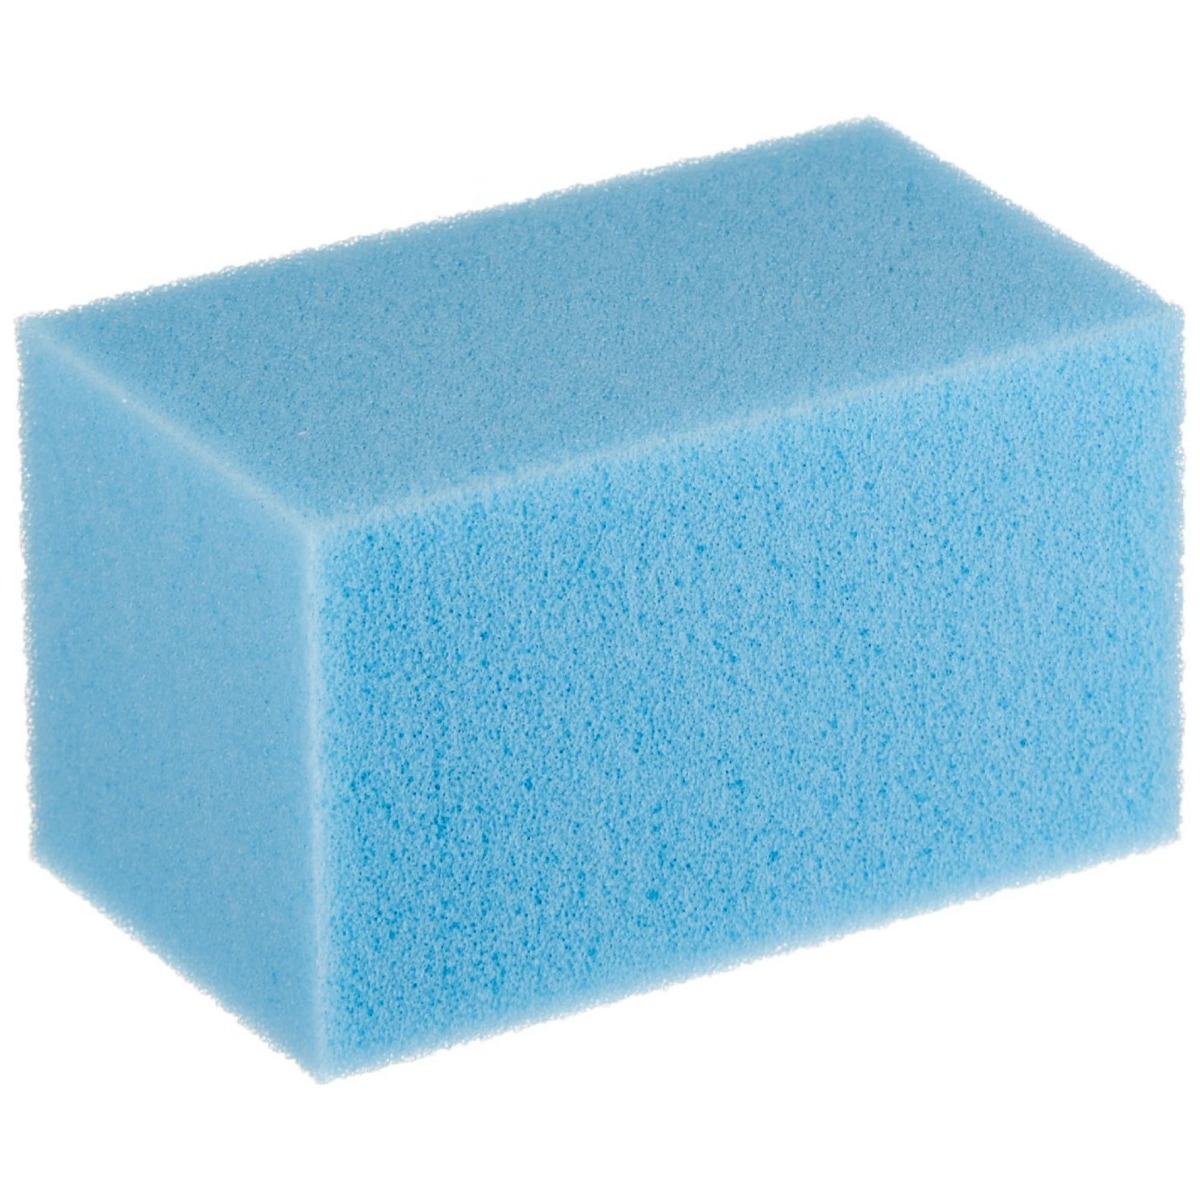 Temper Foam R-Lite Foam Blocks, Medium